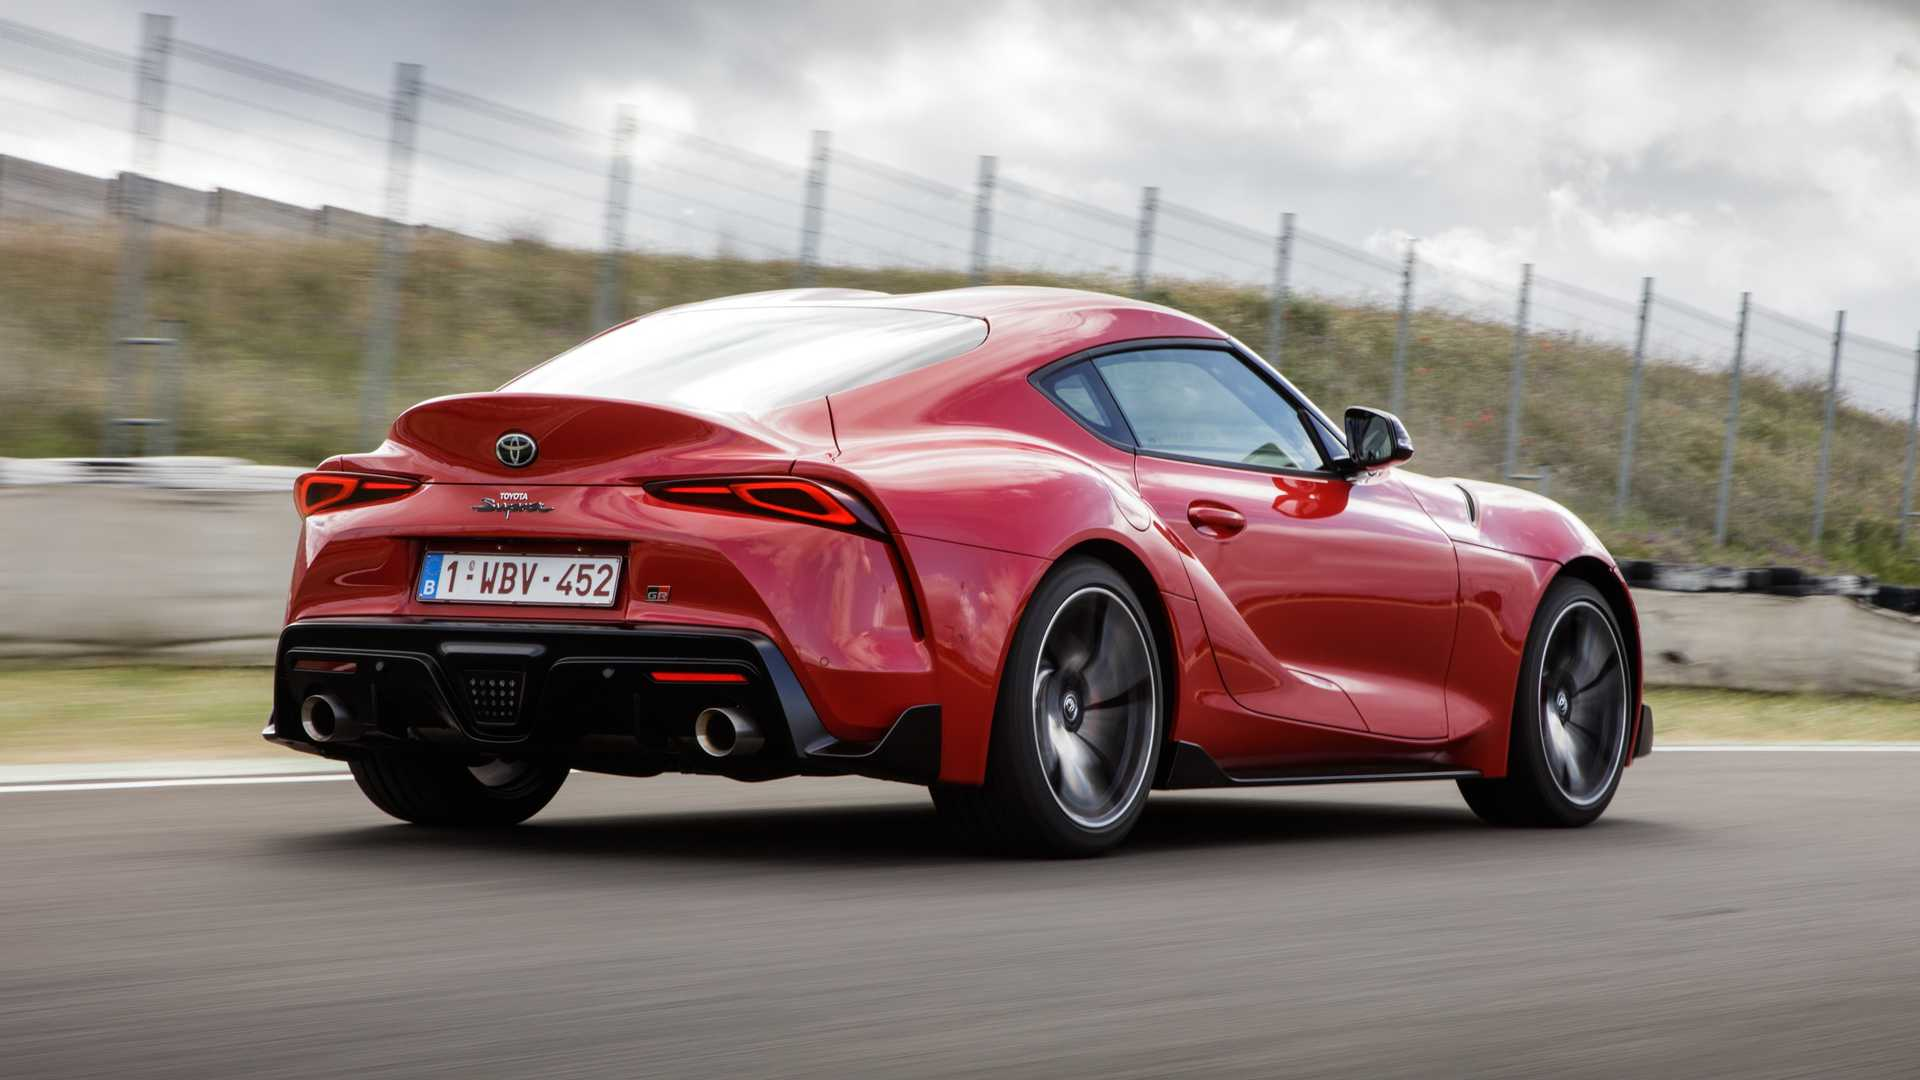 70 The Best Toyota Supra 2019 Price And Release Date